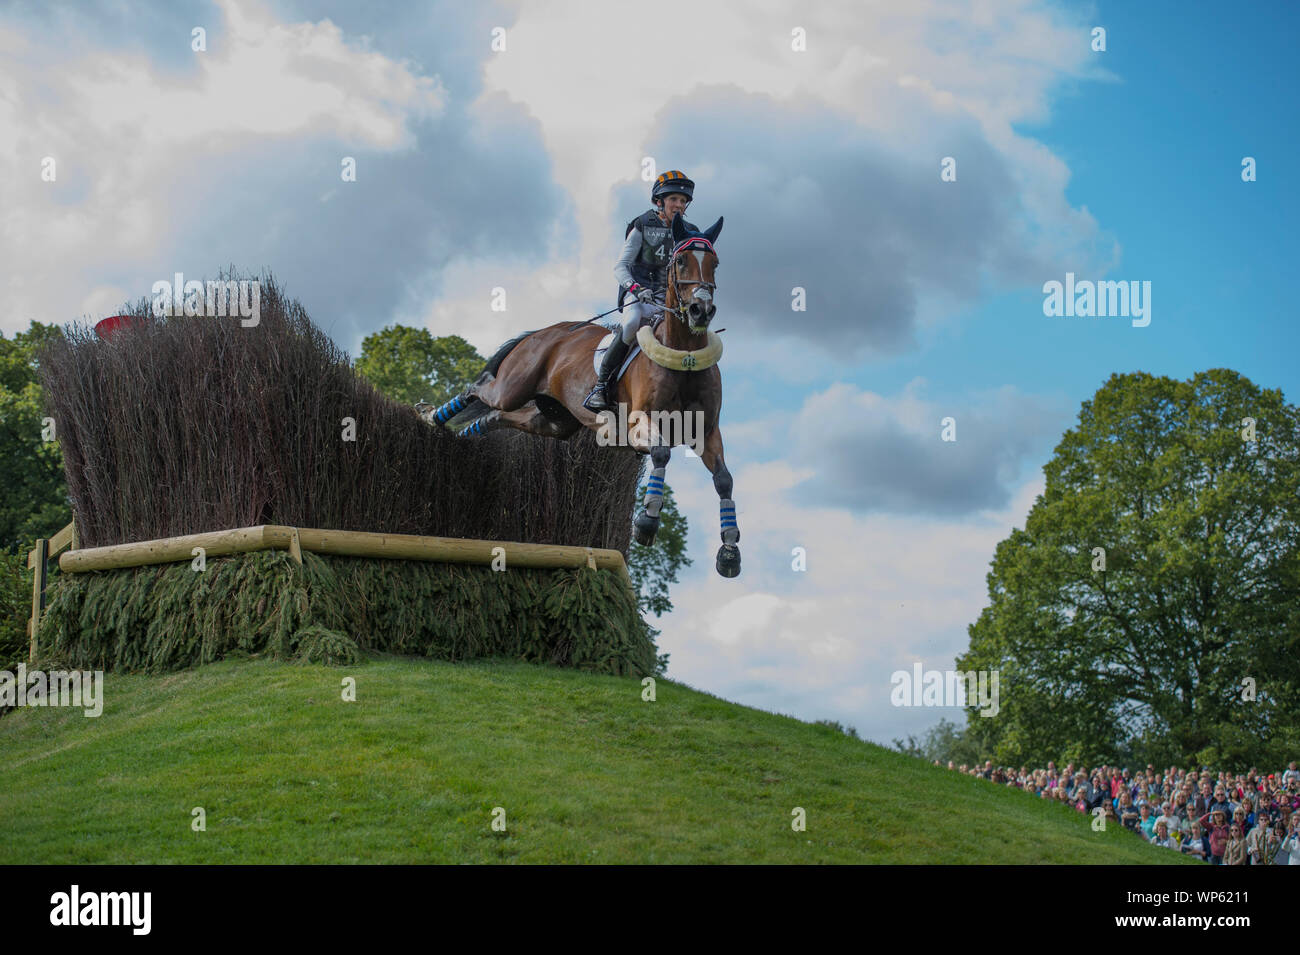 Stamford, UK, Saturday 7th September, 2019. Elisabeth Halliday-Sharp (USA) riding Deniro Z during the Land Rover Burghley Horse Trials,  Cross Country phase. © Julie Priestley/Alamy Live News Stock Photo